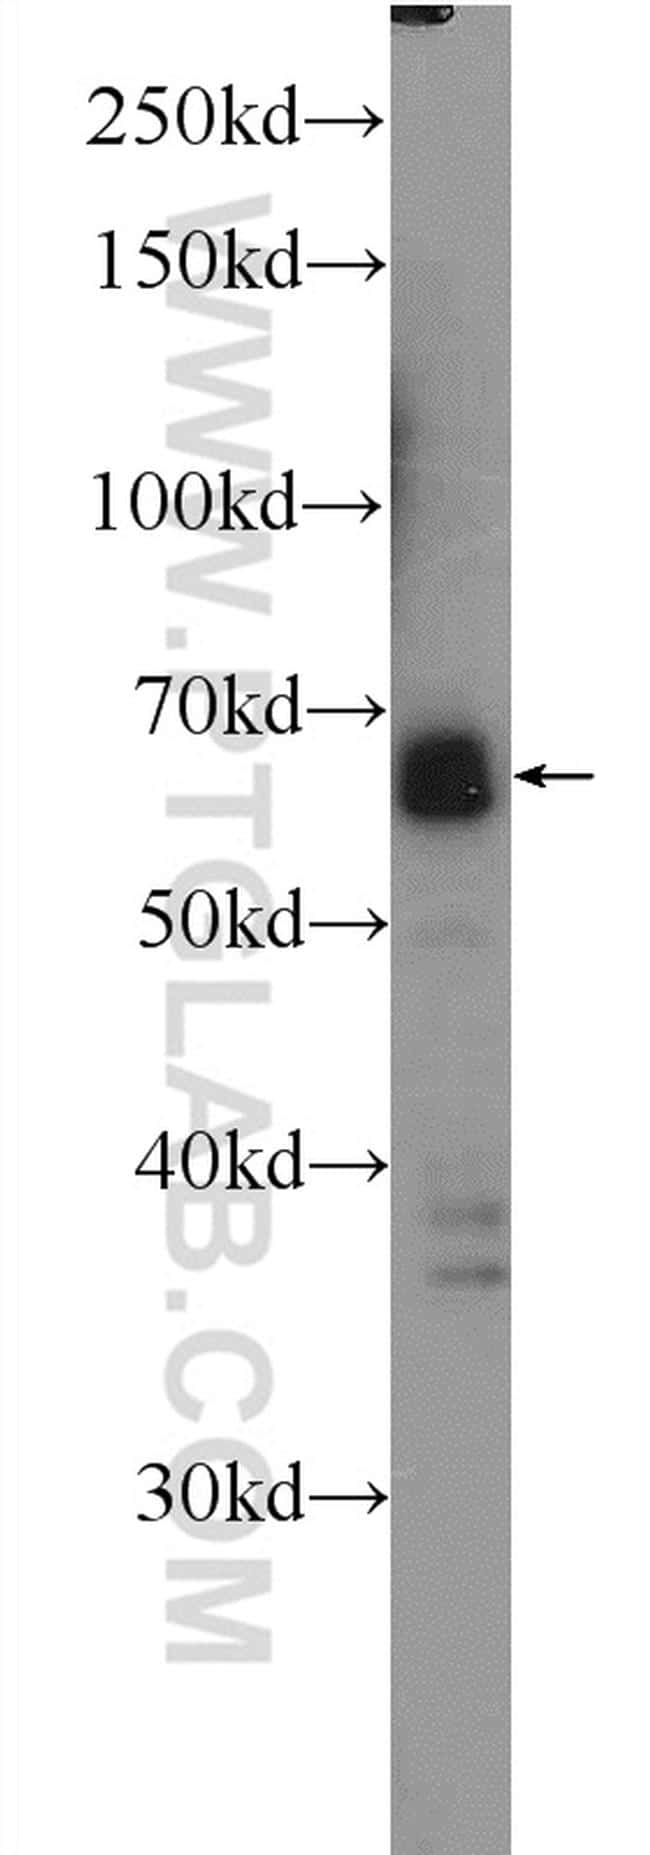 SUPT7L Antibody in Western Blot (WB)